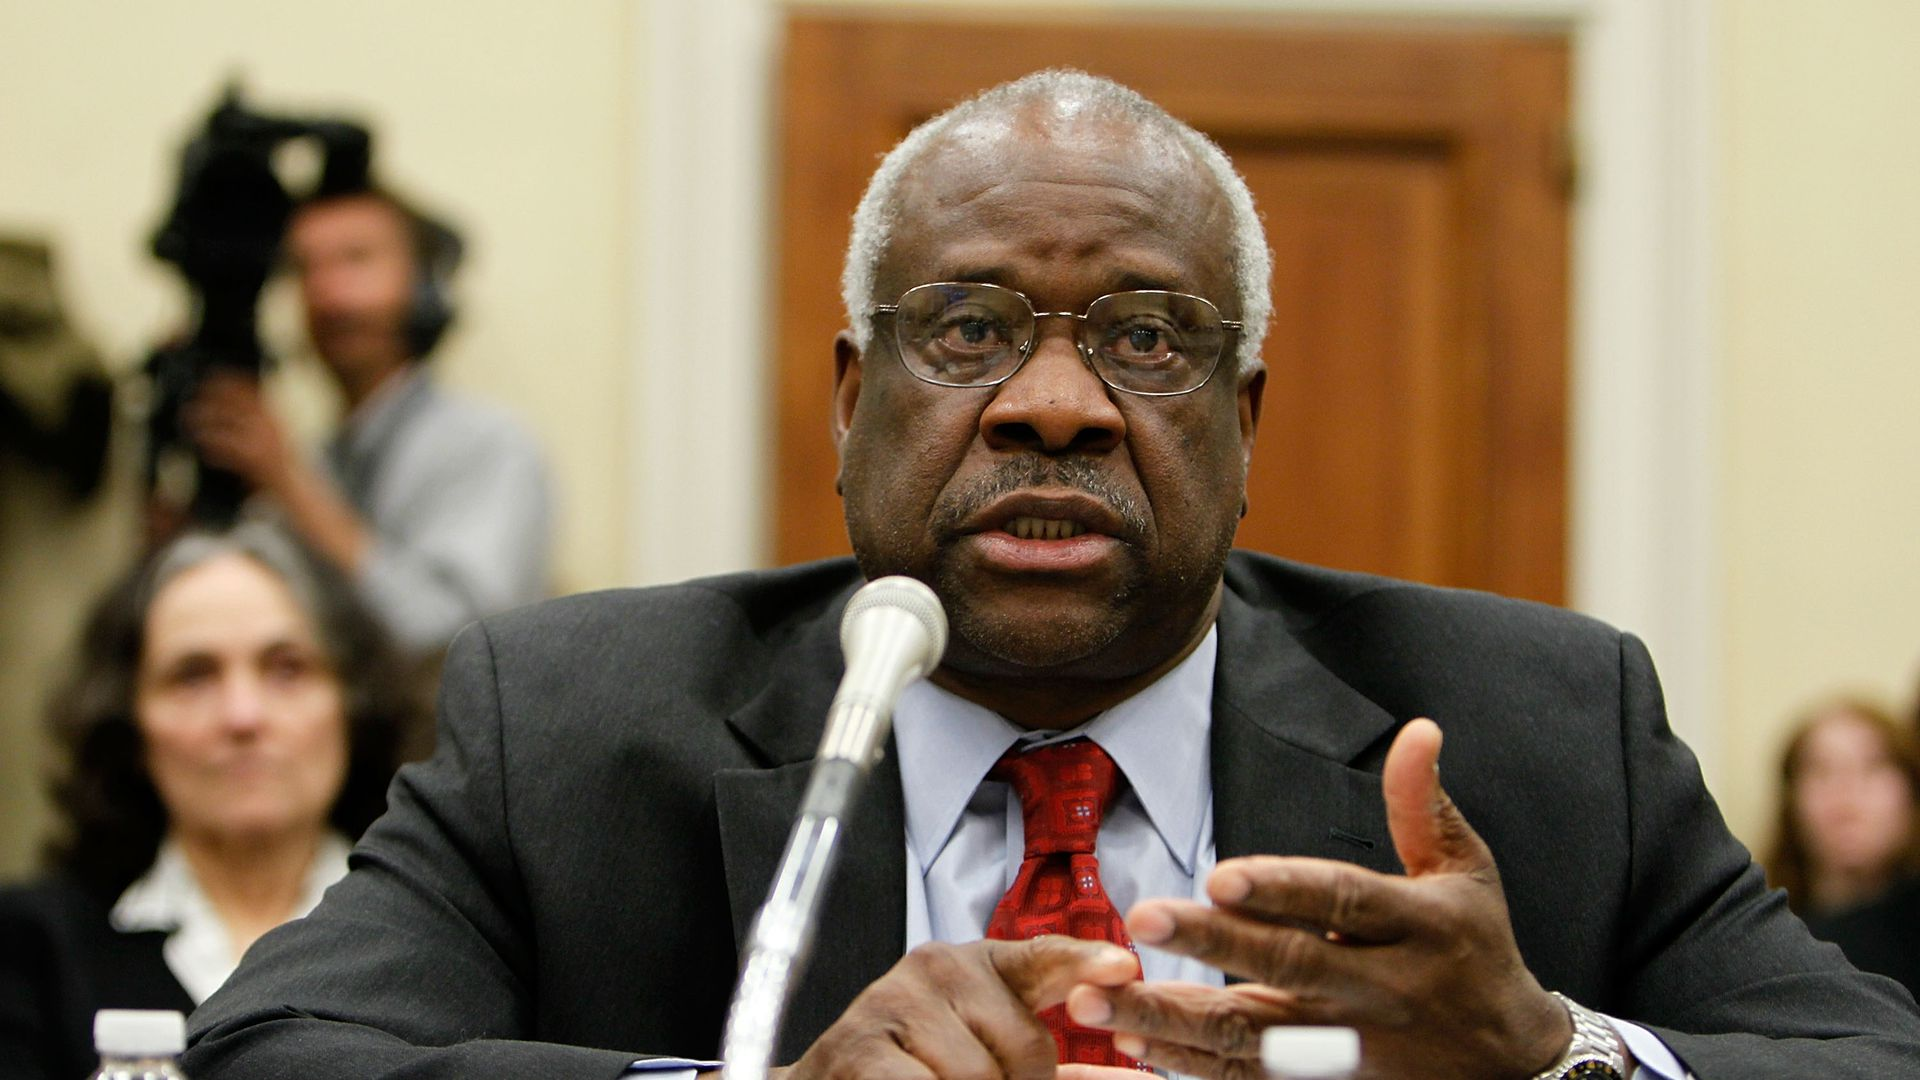 Clarence Thomas testifies to Congress